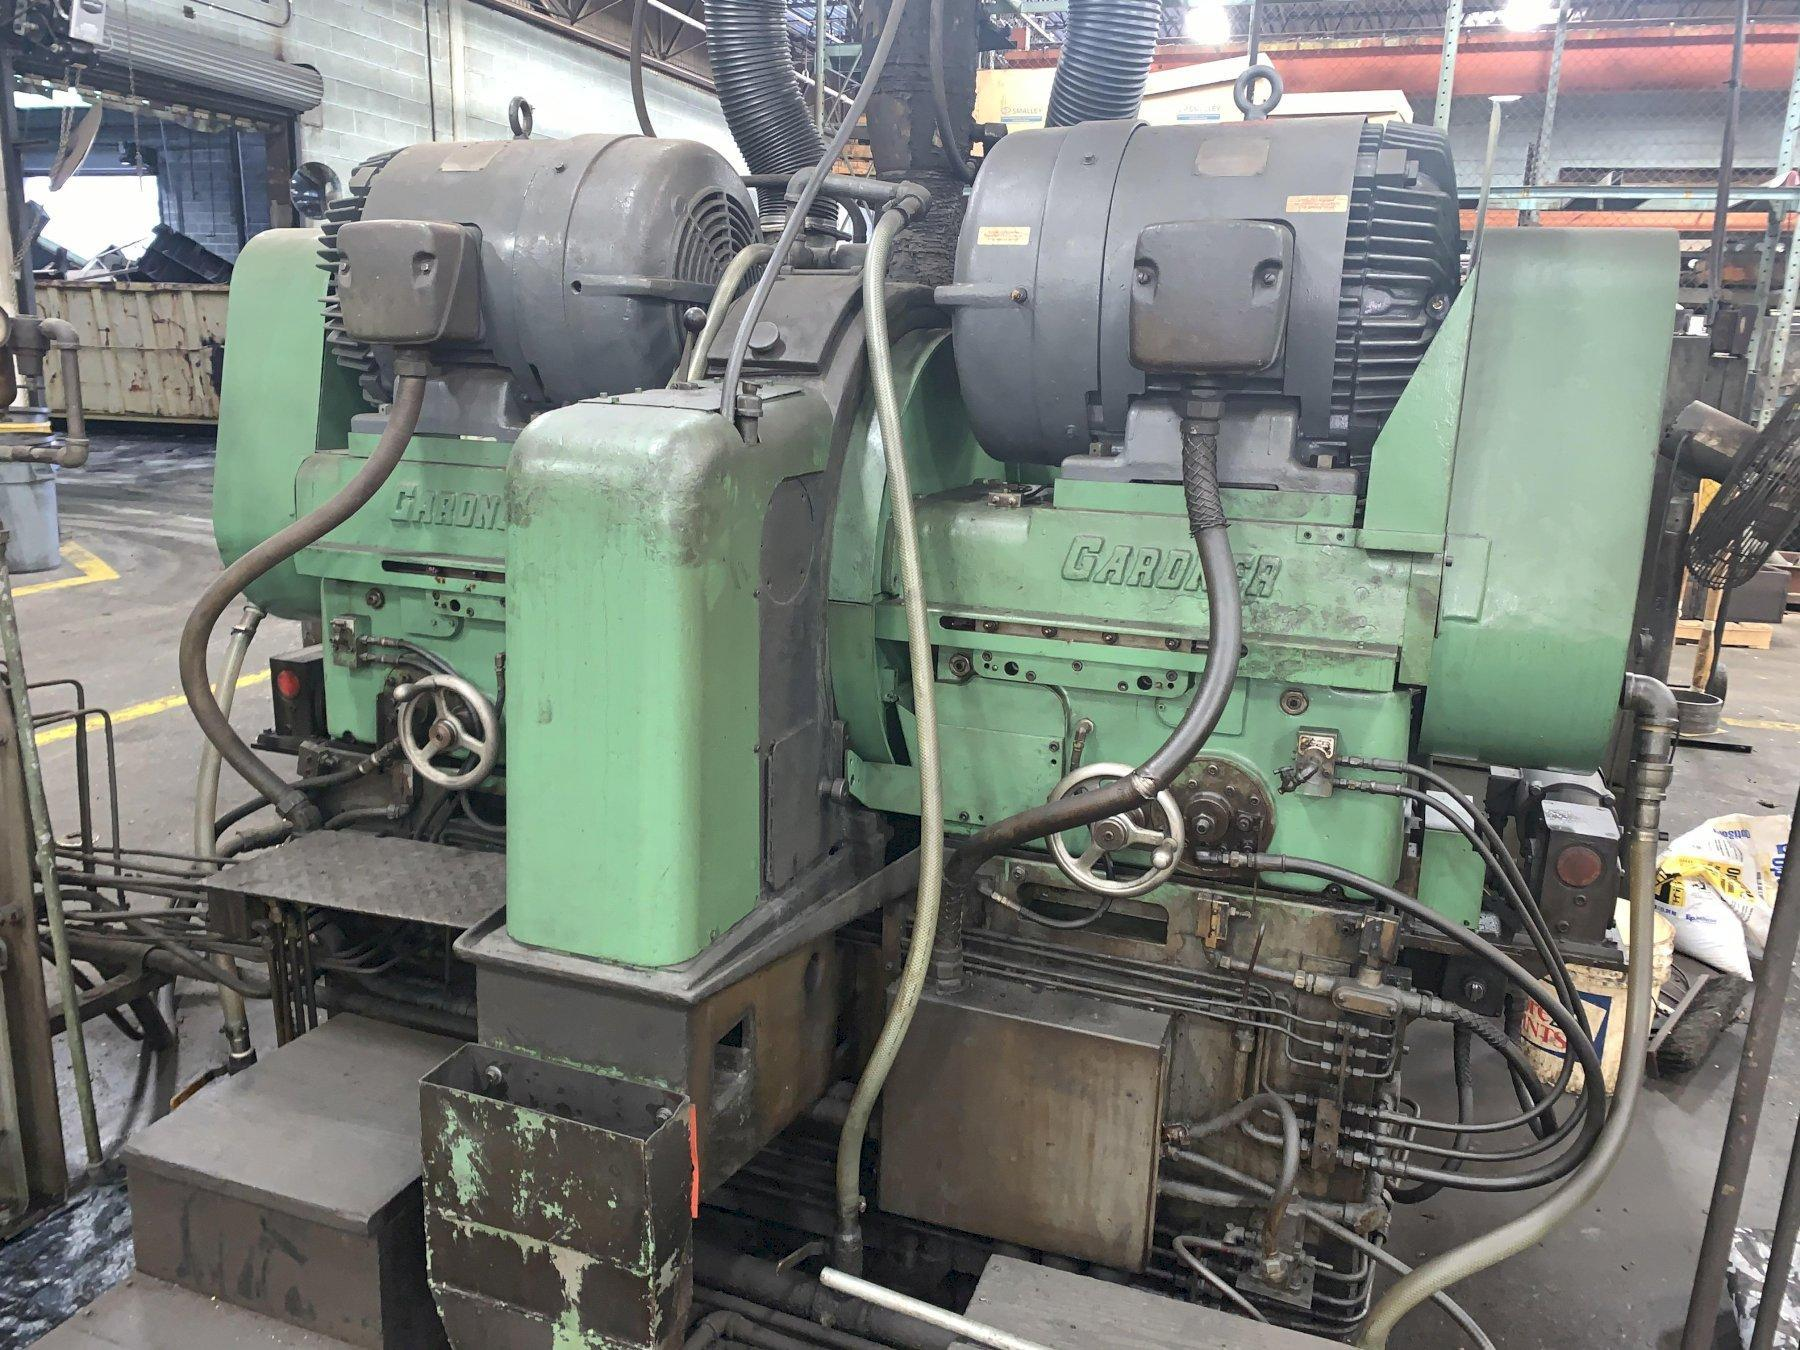 "30"" GARDNER MODEL #2H30-30 DOUBLE DISC GRINDER: STOCK #12919"